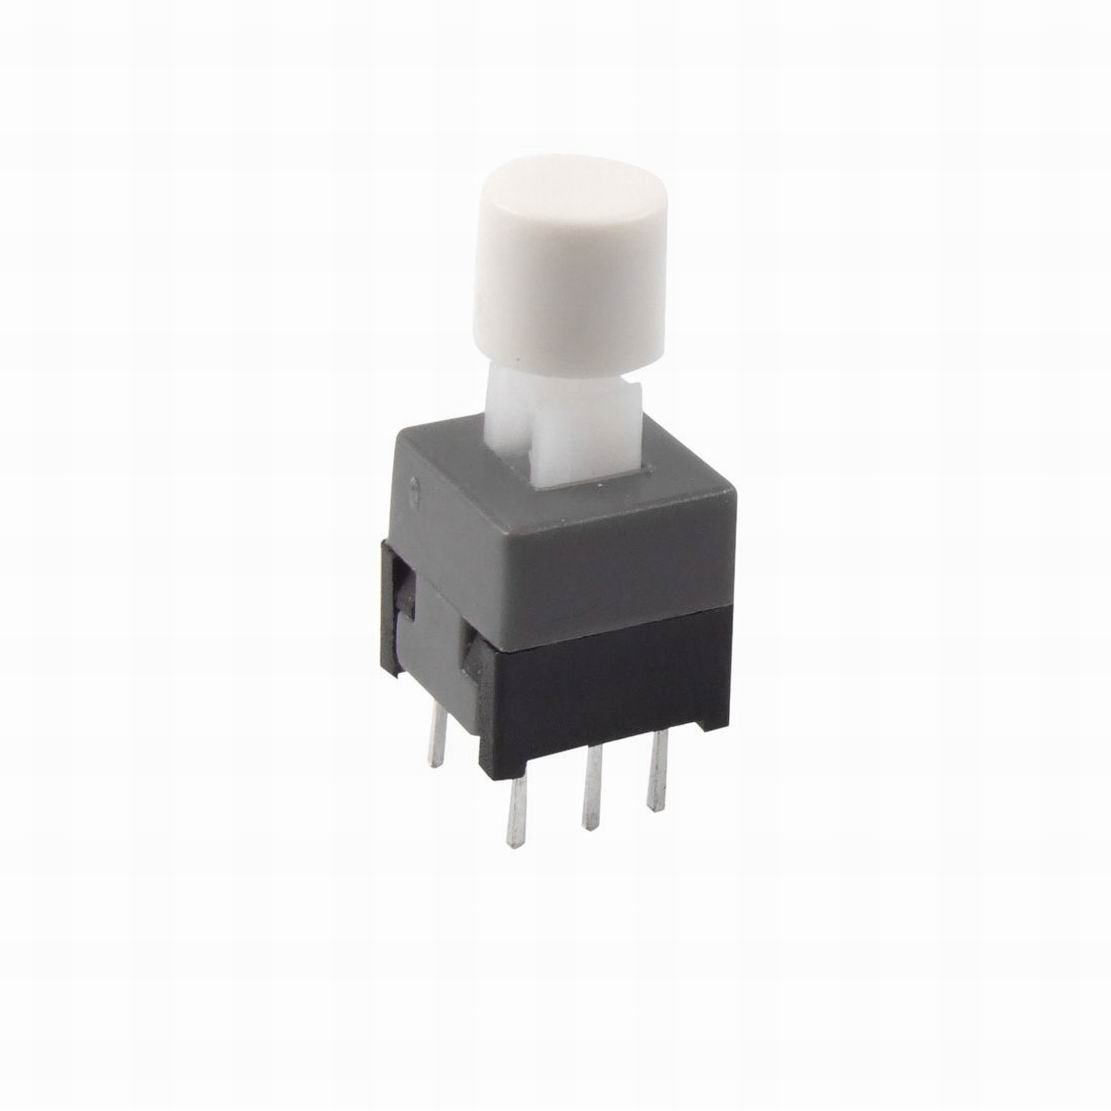 Ucland 6-Pin Self Lock Tactile Push Button Switch, 8.5 x 8.5 x 14mm